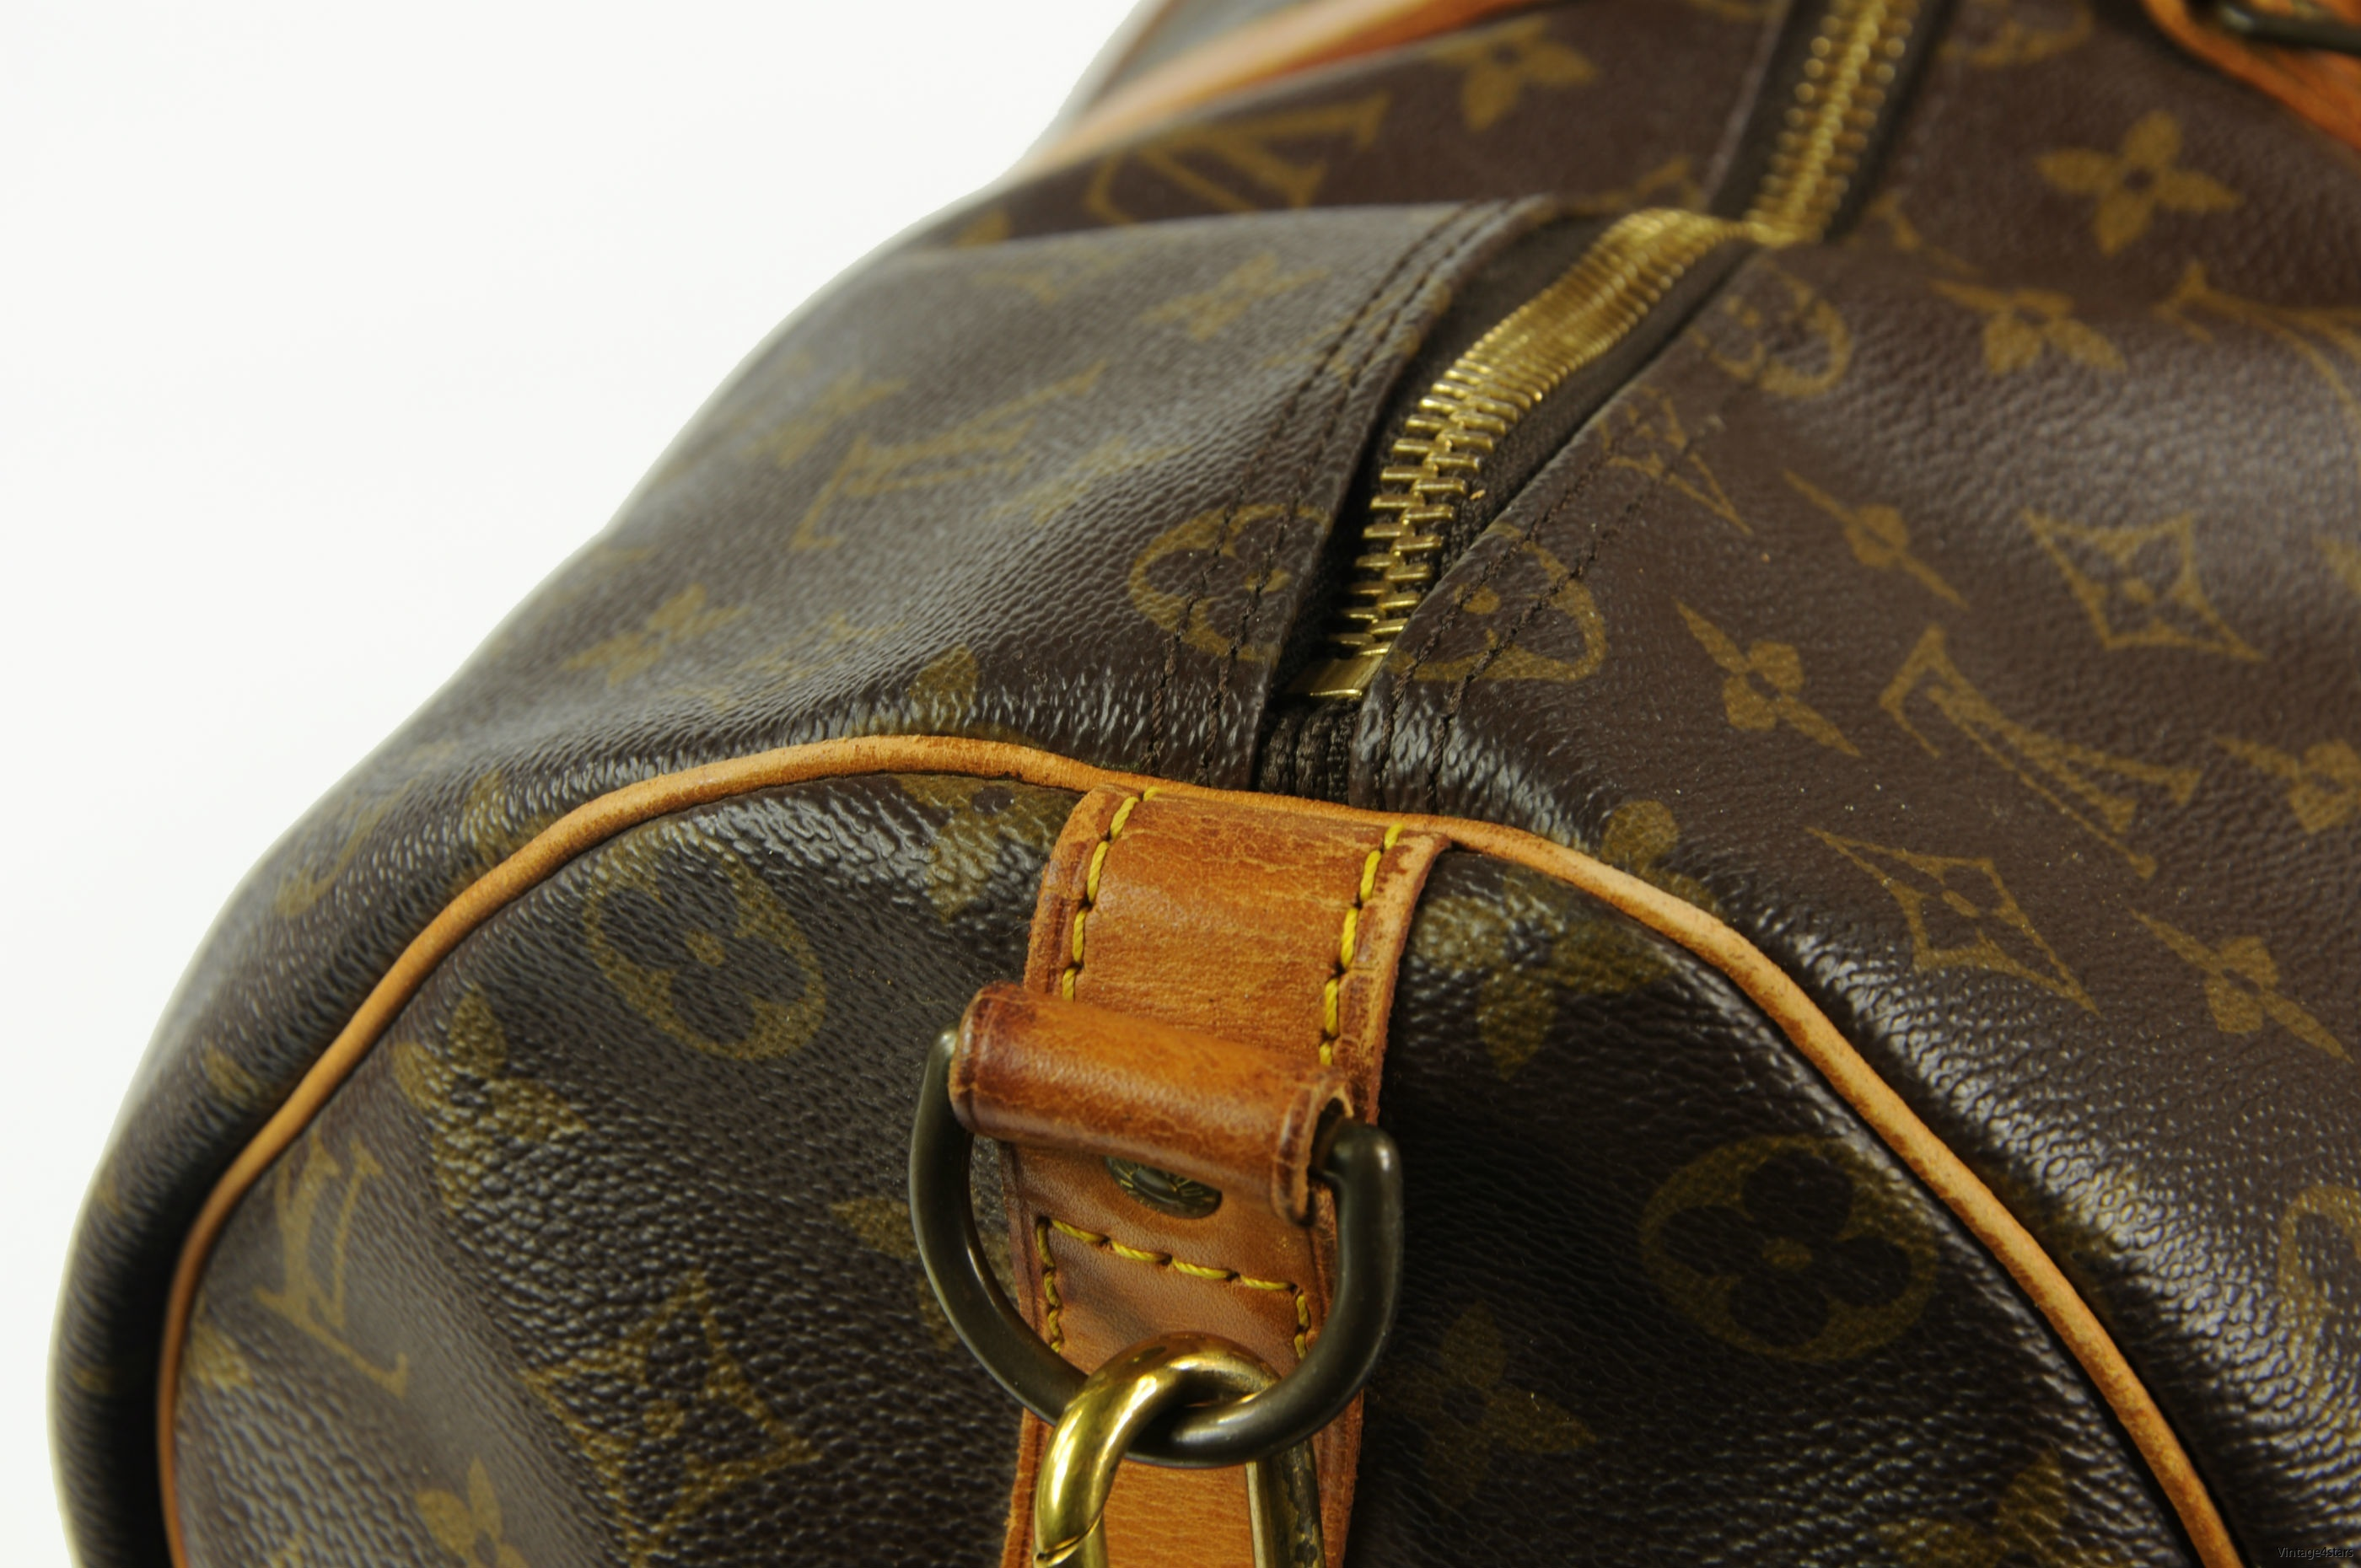 Louis Vuitton Keepall 50 7